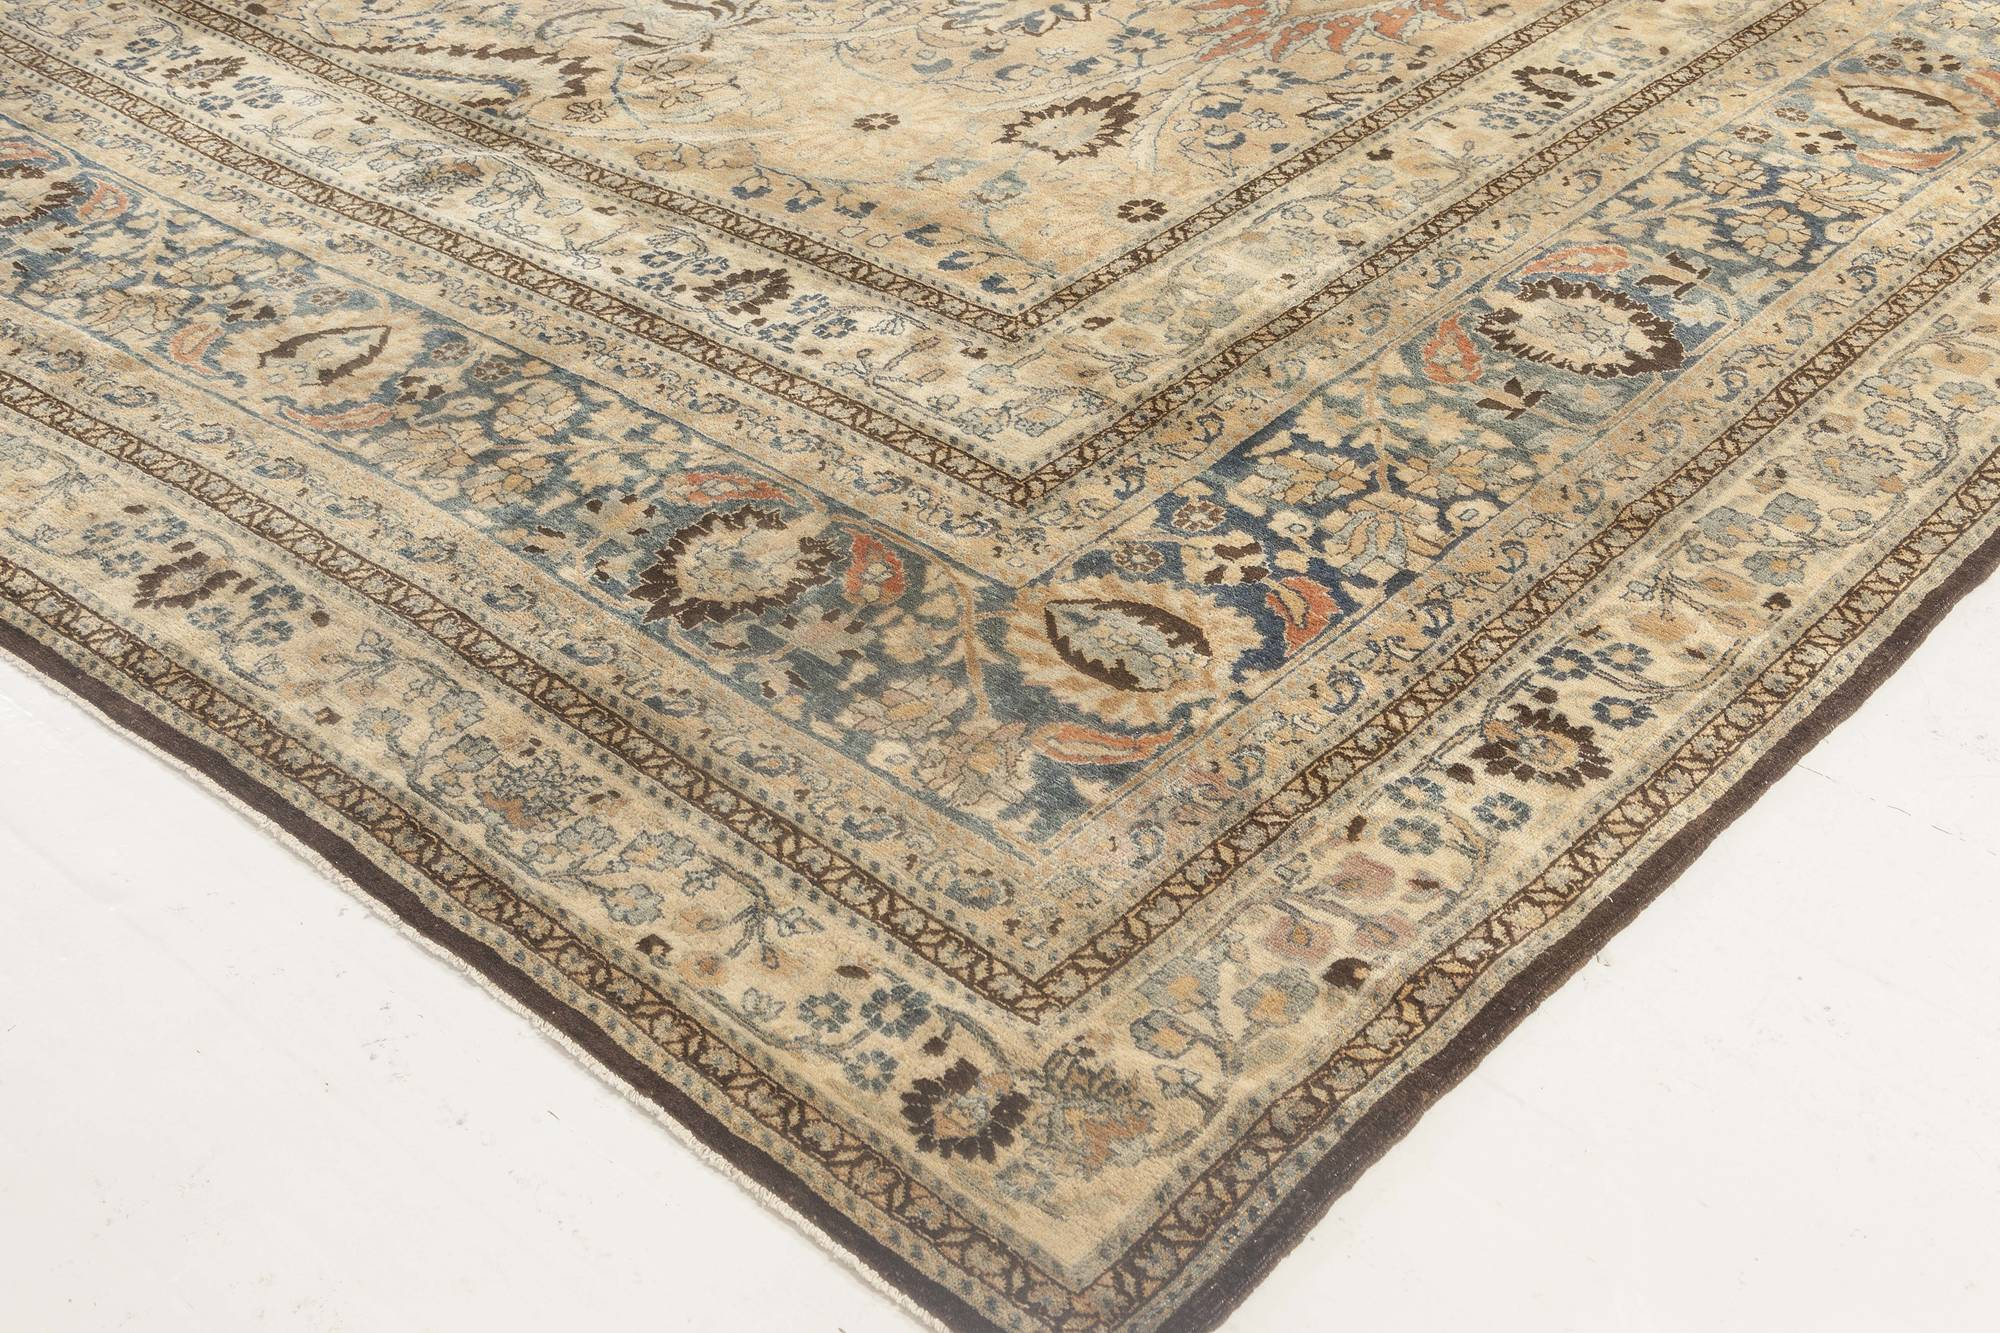 Oversized Antique Persian Khorassan Rug Bb6708 By Dlb